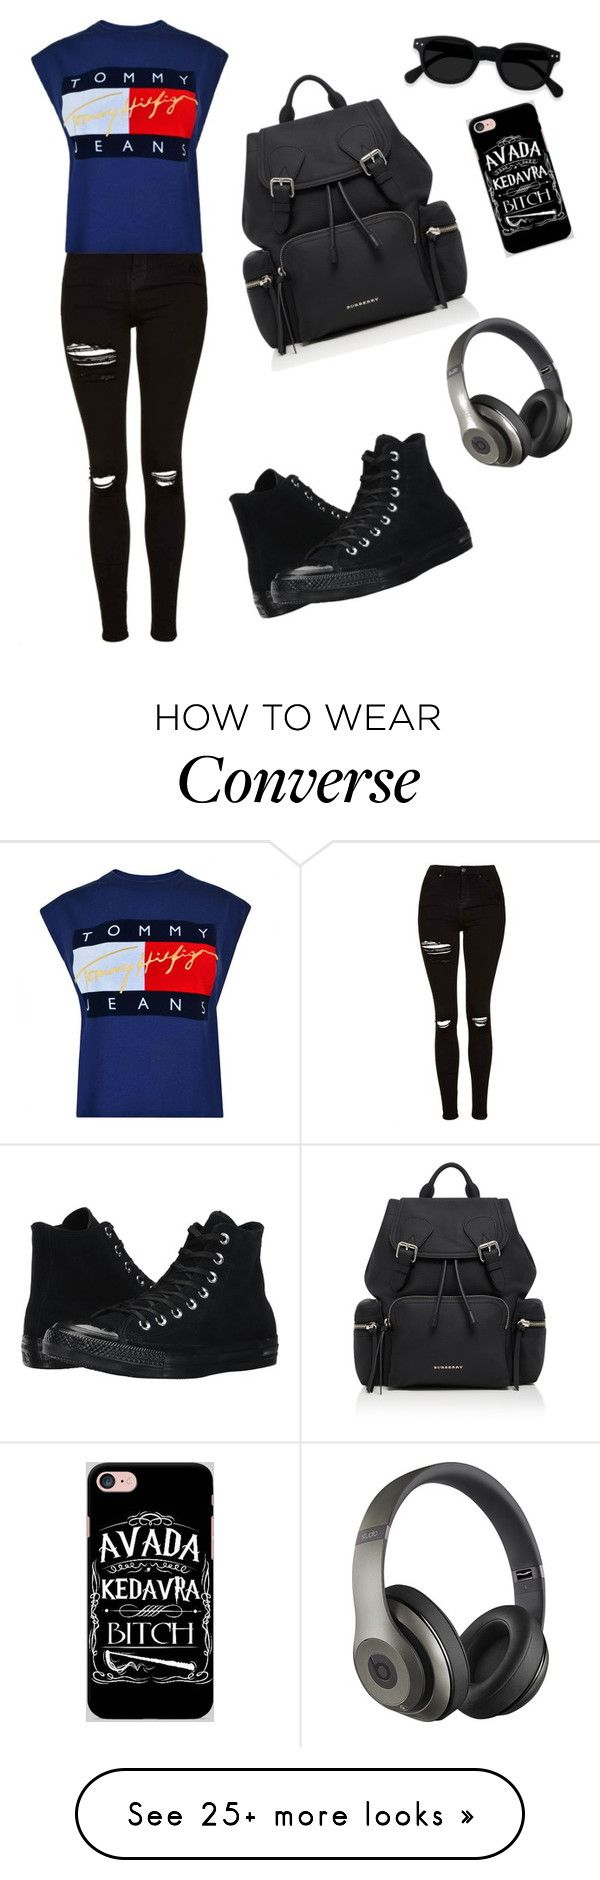 """""""Traveling"""" by esii-li on Polyvore featuring Topshop, Tommy Hilfiger, Converse, Burberry, Beats by Dr. Dre and Samsung"""